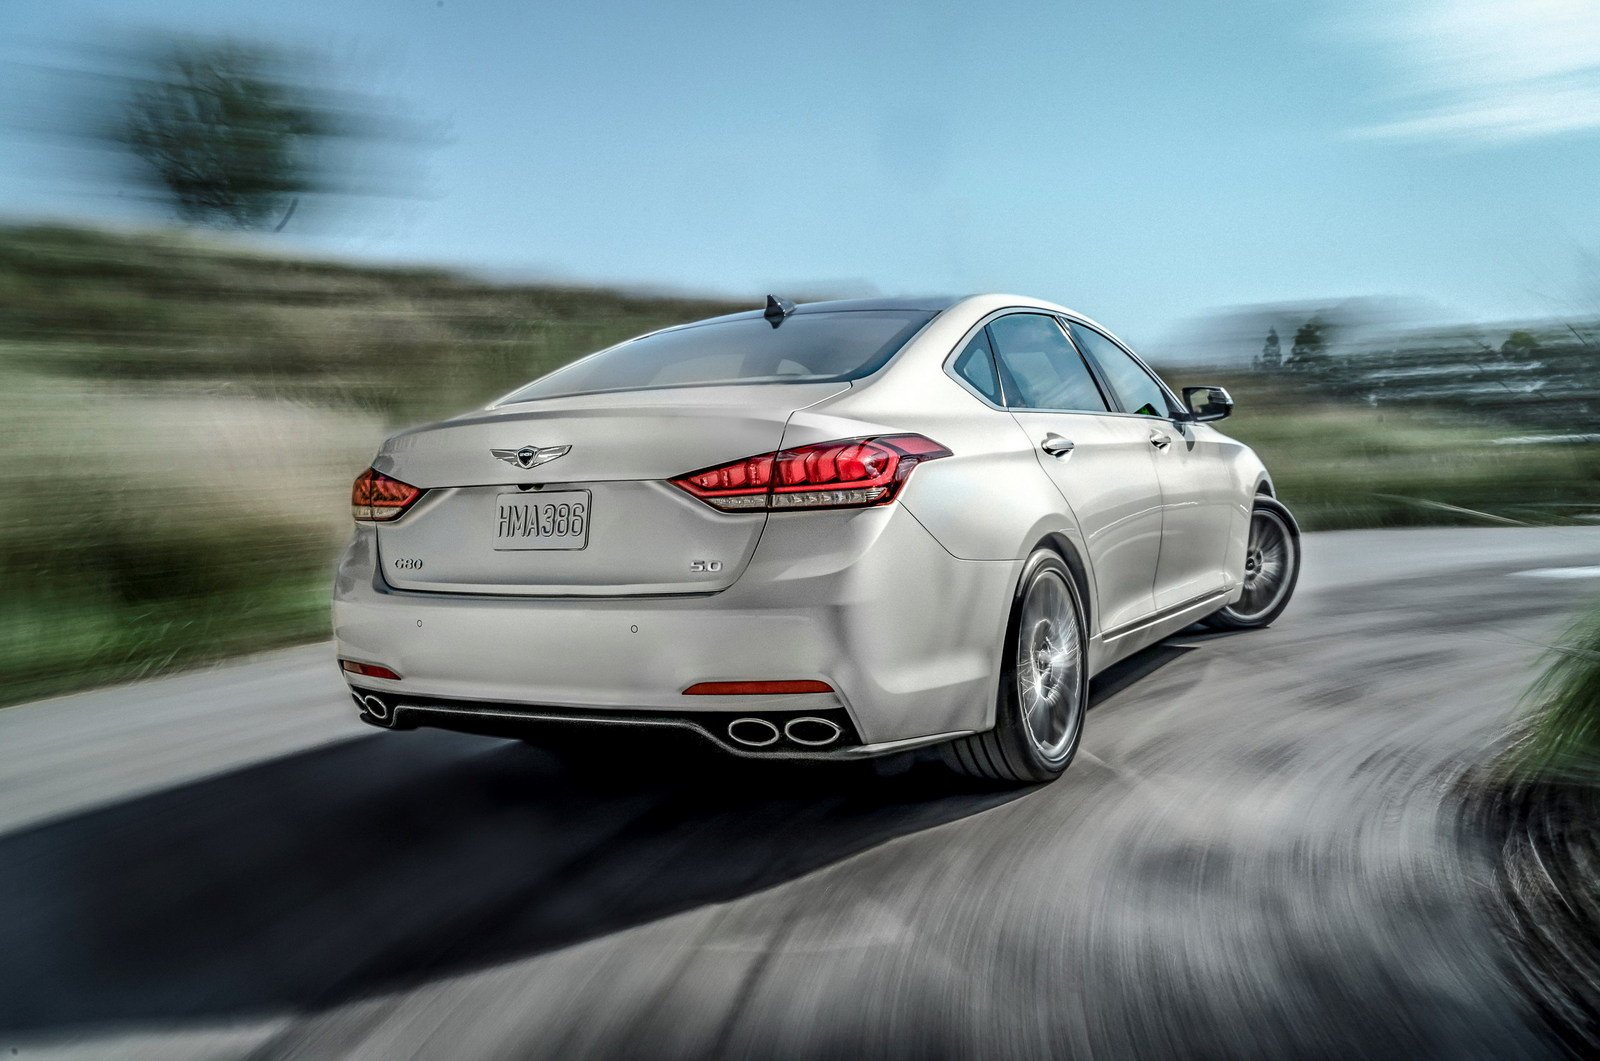 2017 genesis g80 picture 683373 car review top speed. Black Bedroom Furniture Sets. Home Design Ideas